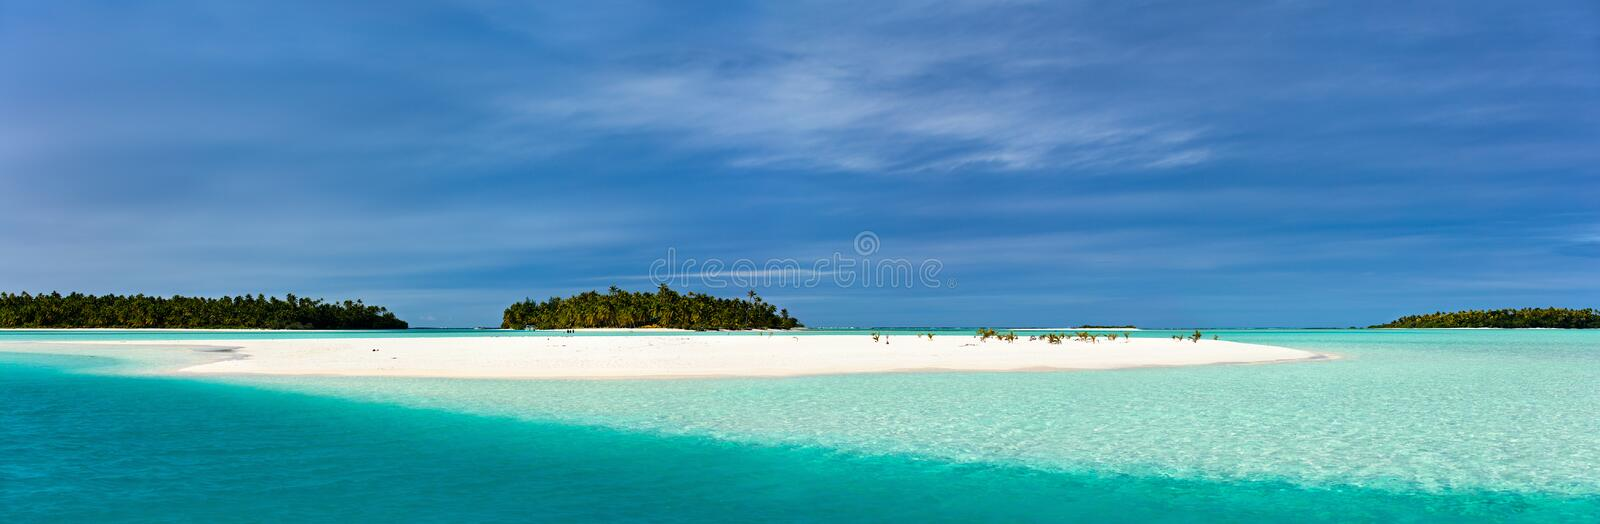 Stunning tropical lagoon and exotic islands in Pacific stock image